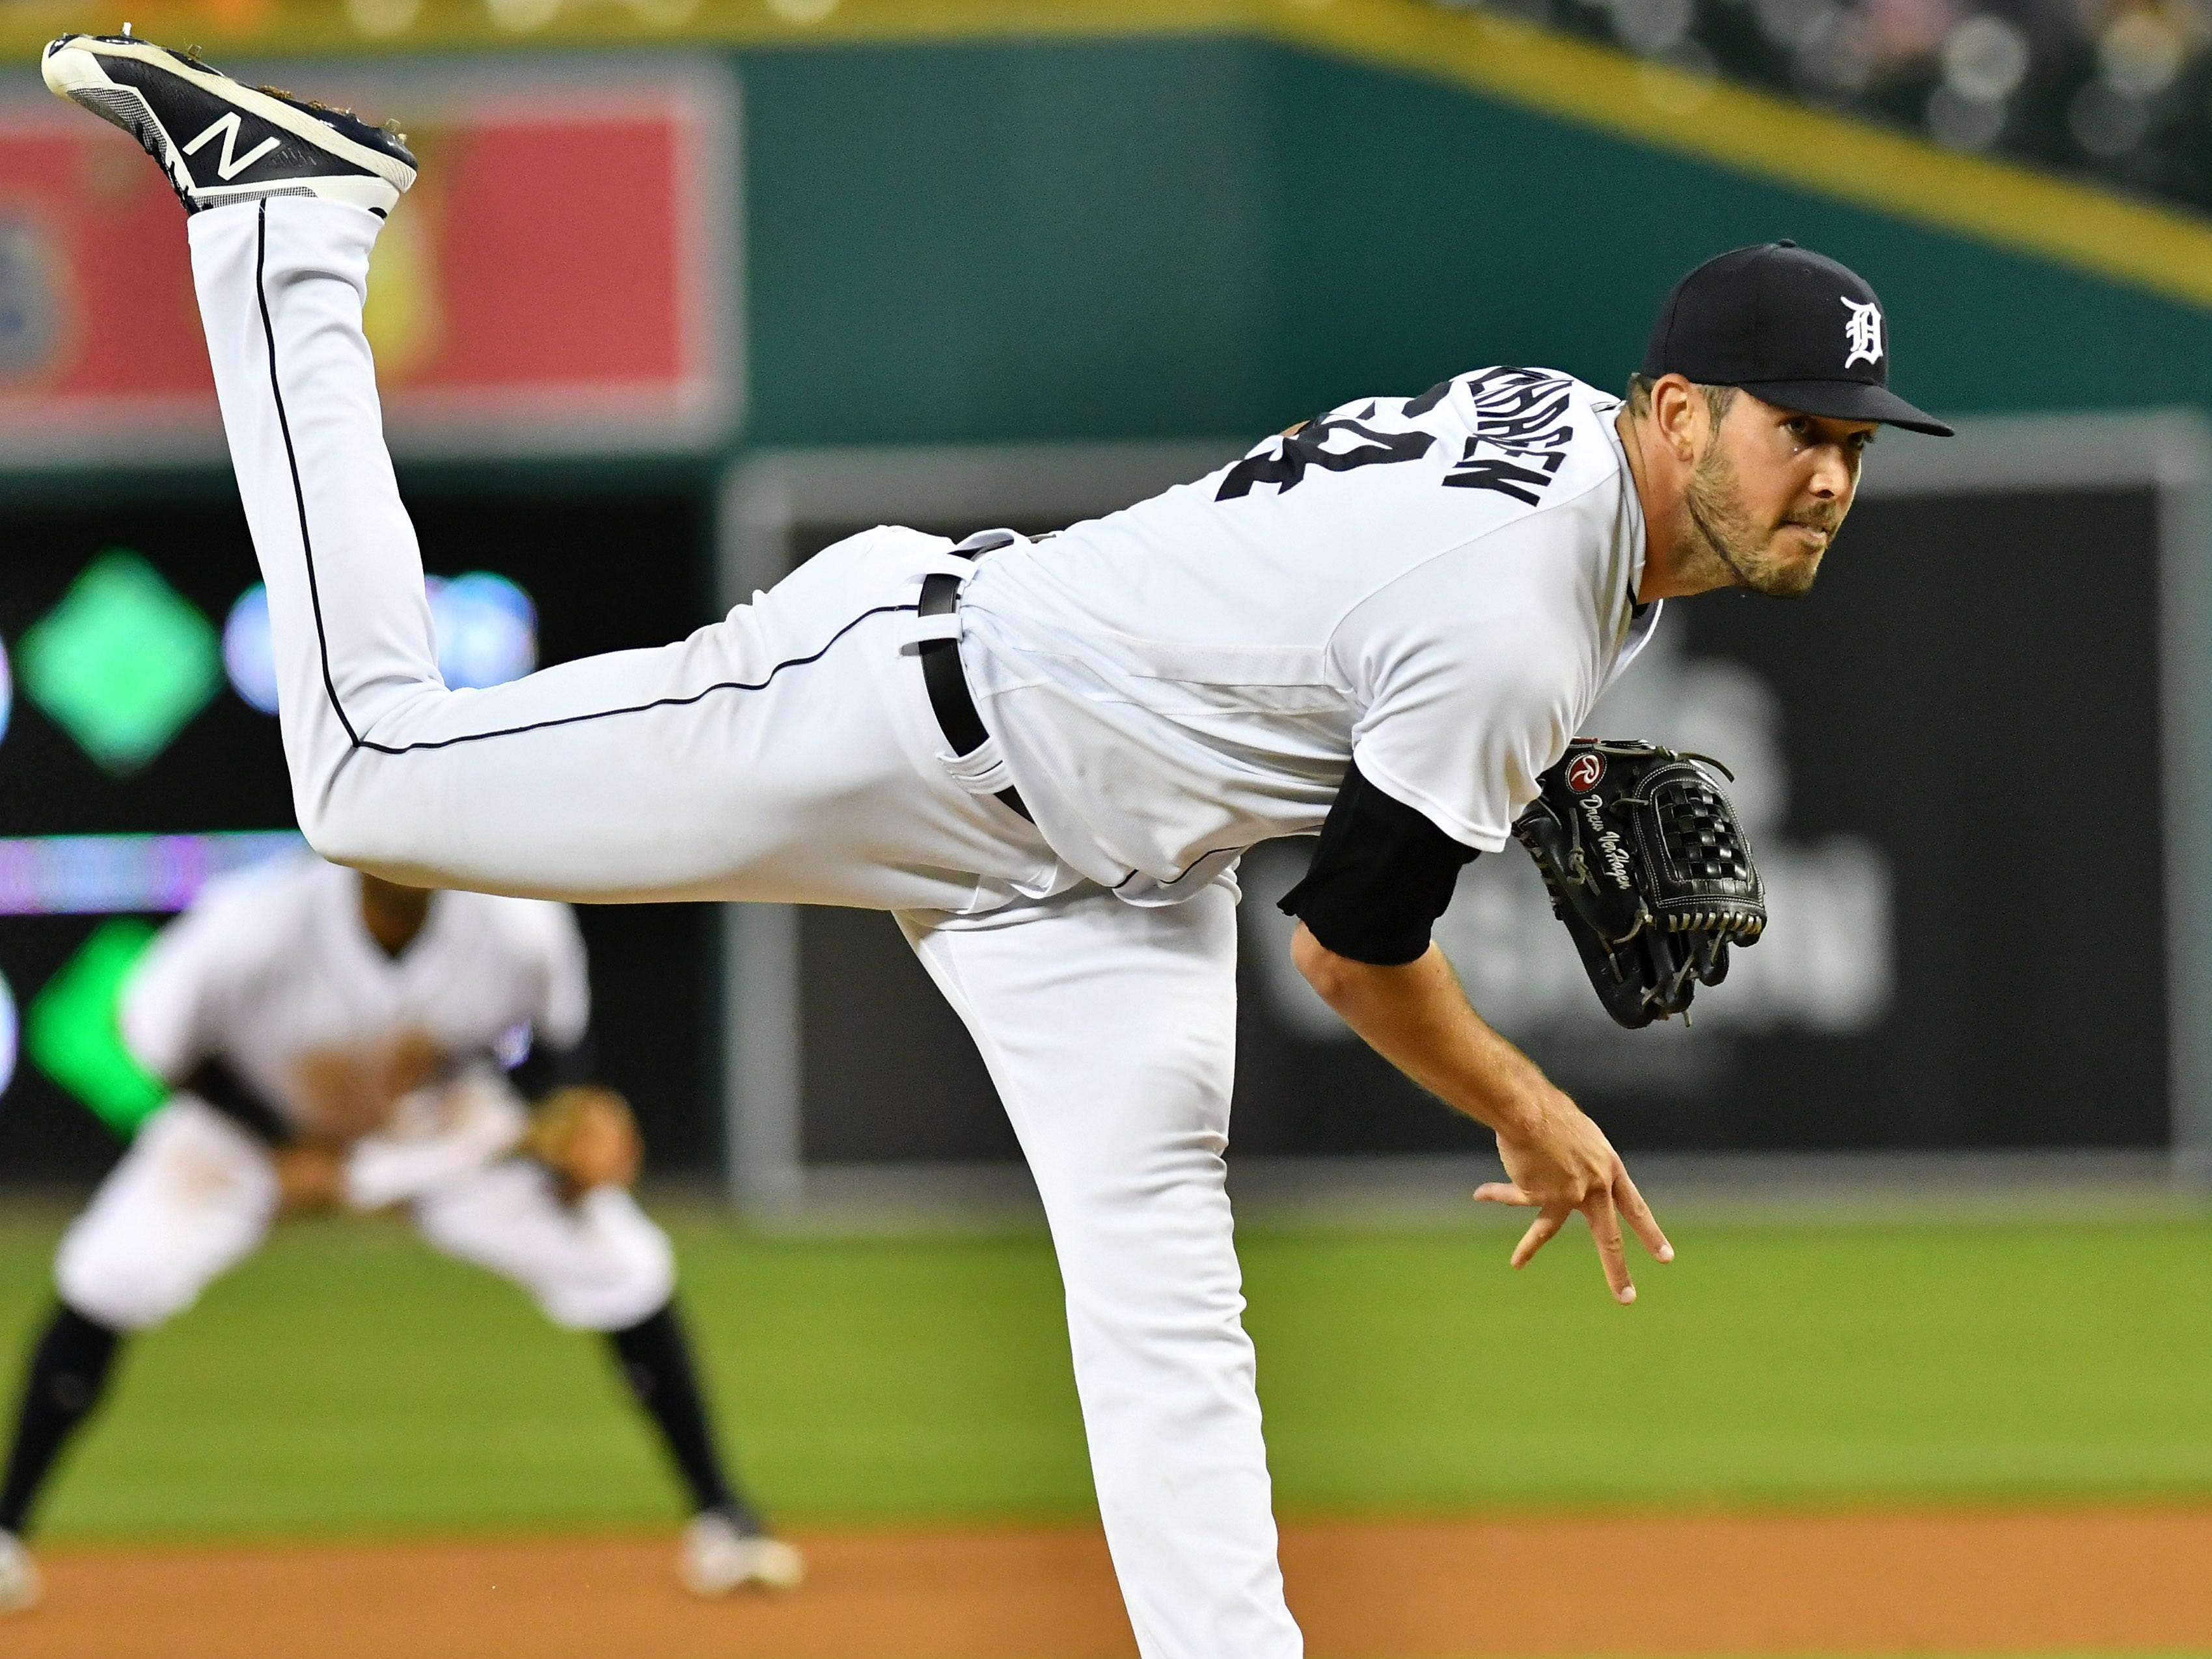 Drew VerHagen (3-3, 4.63, 1.15): On June 19 he lost a throw in the lights in Cincinnati and it broke his nose. At that point, he'd already been DFA'd, outrighted to Toledo and re-purchased by the Tigers. His ERA at that point was over 9, and opponents were hitting .287 and slugging .507. He came back on July 9 a different pitcher. In his final 37 innings over 27 outings, he allowed 10 runs, dropping his ERA under 5 and opponent hit .191 and slugged .272. This is one of the big success stories of 2018.  Mid-term grade: D Second-half grade: B-plus Final Grade: B-minus